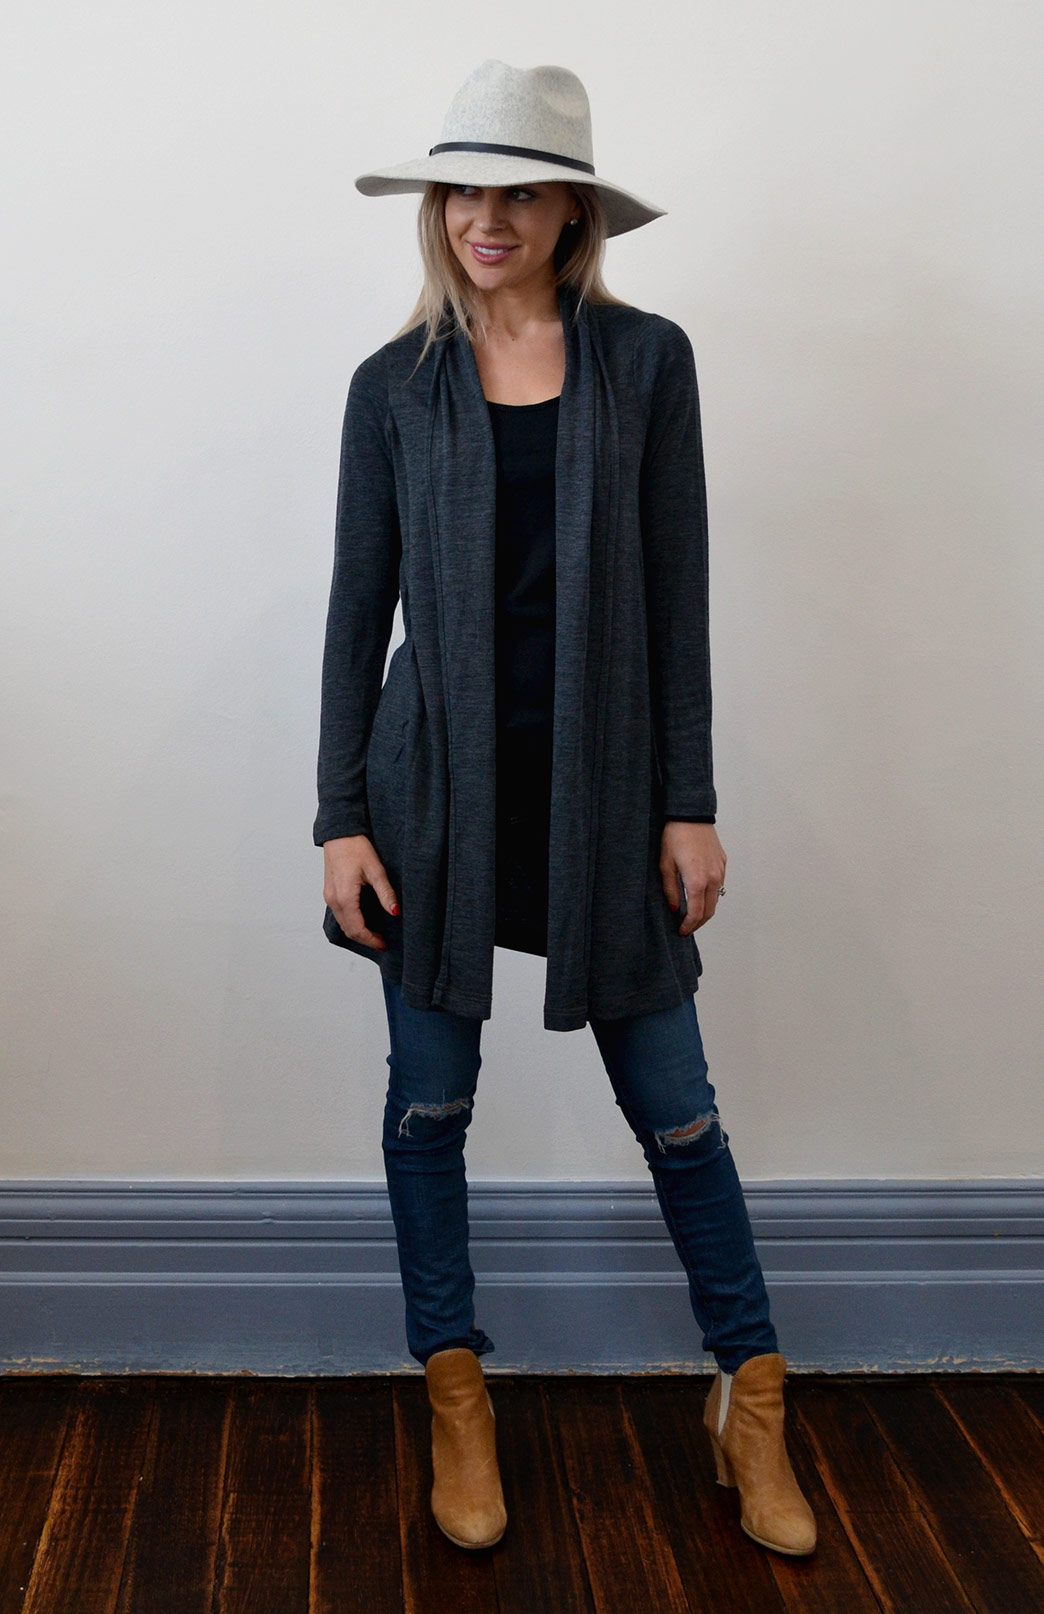 Drape Cardigan - Women's Charcoal Grey Wool Drape Cardigan with no buttons or fastenings - Smitten Merino Tasmania Australia